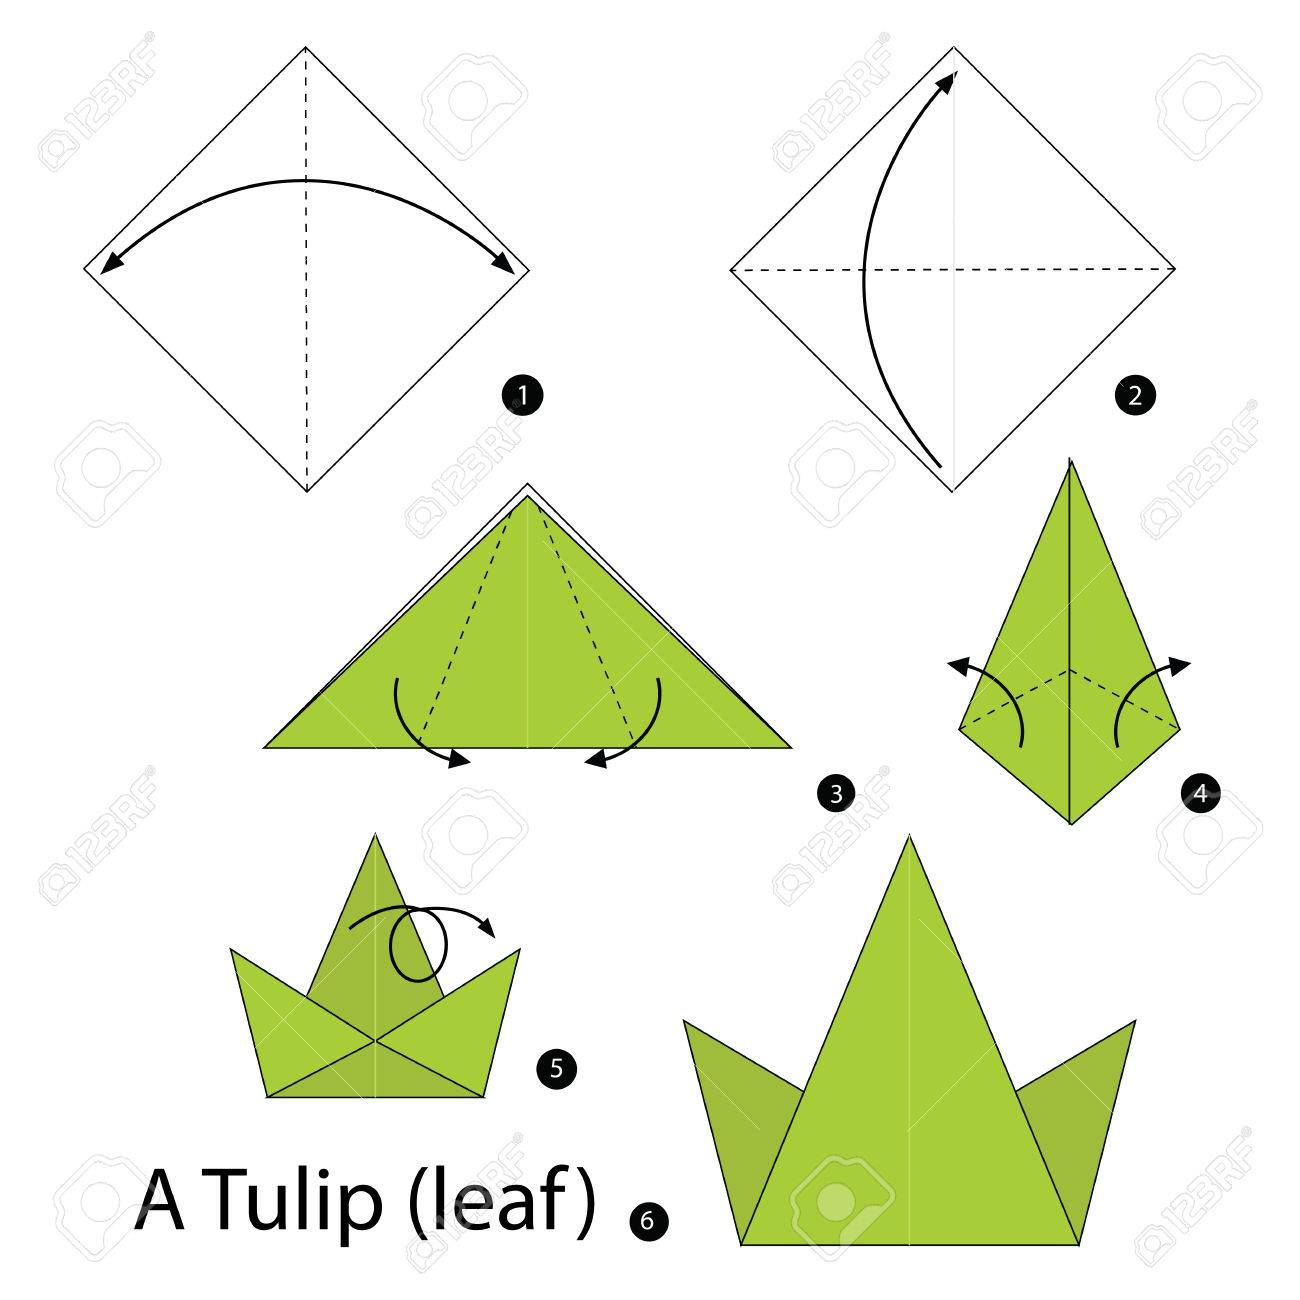 Step by step instructions how to make origami A Tulip (leaf )